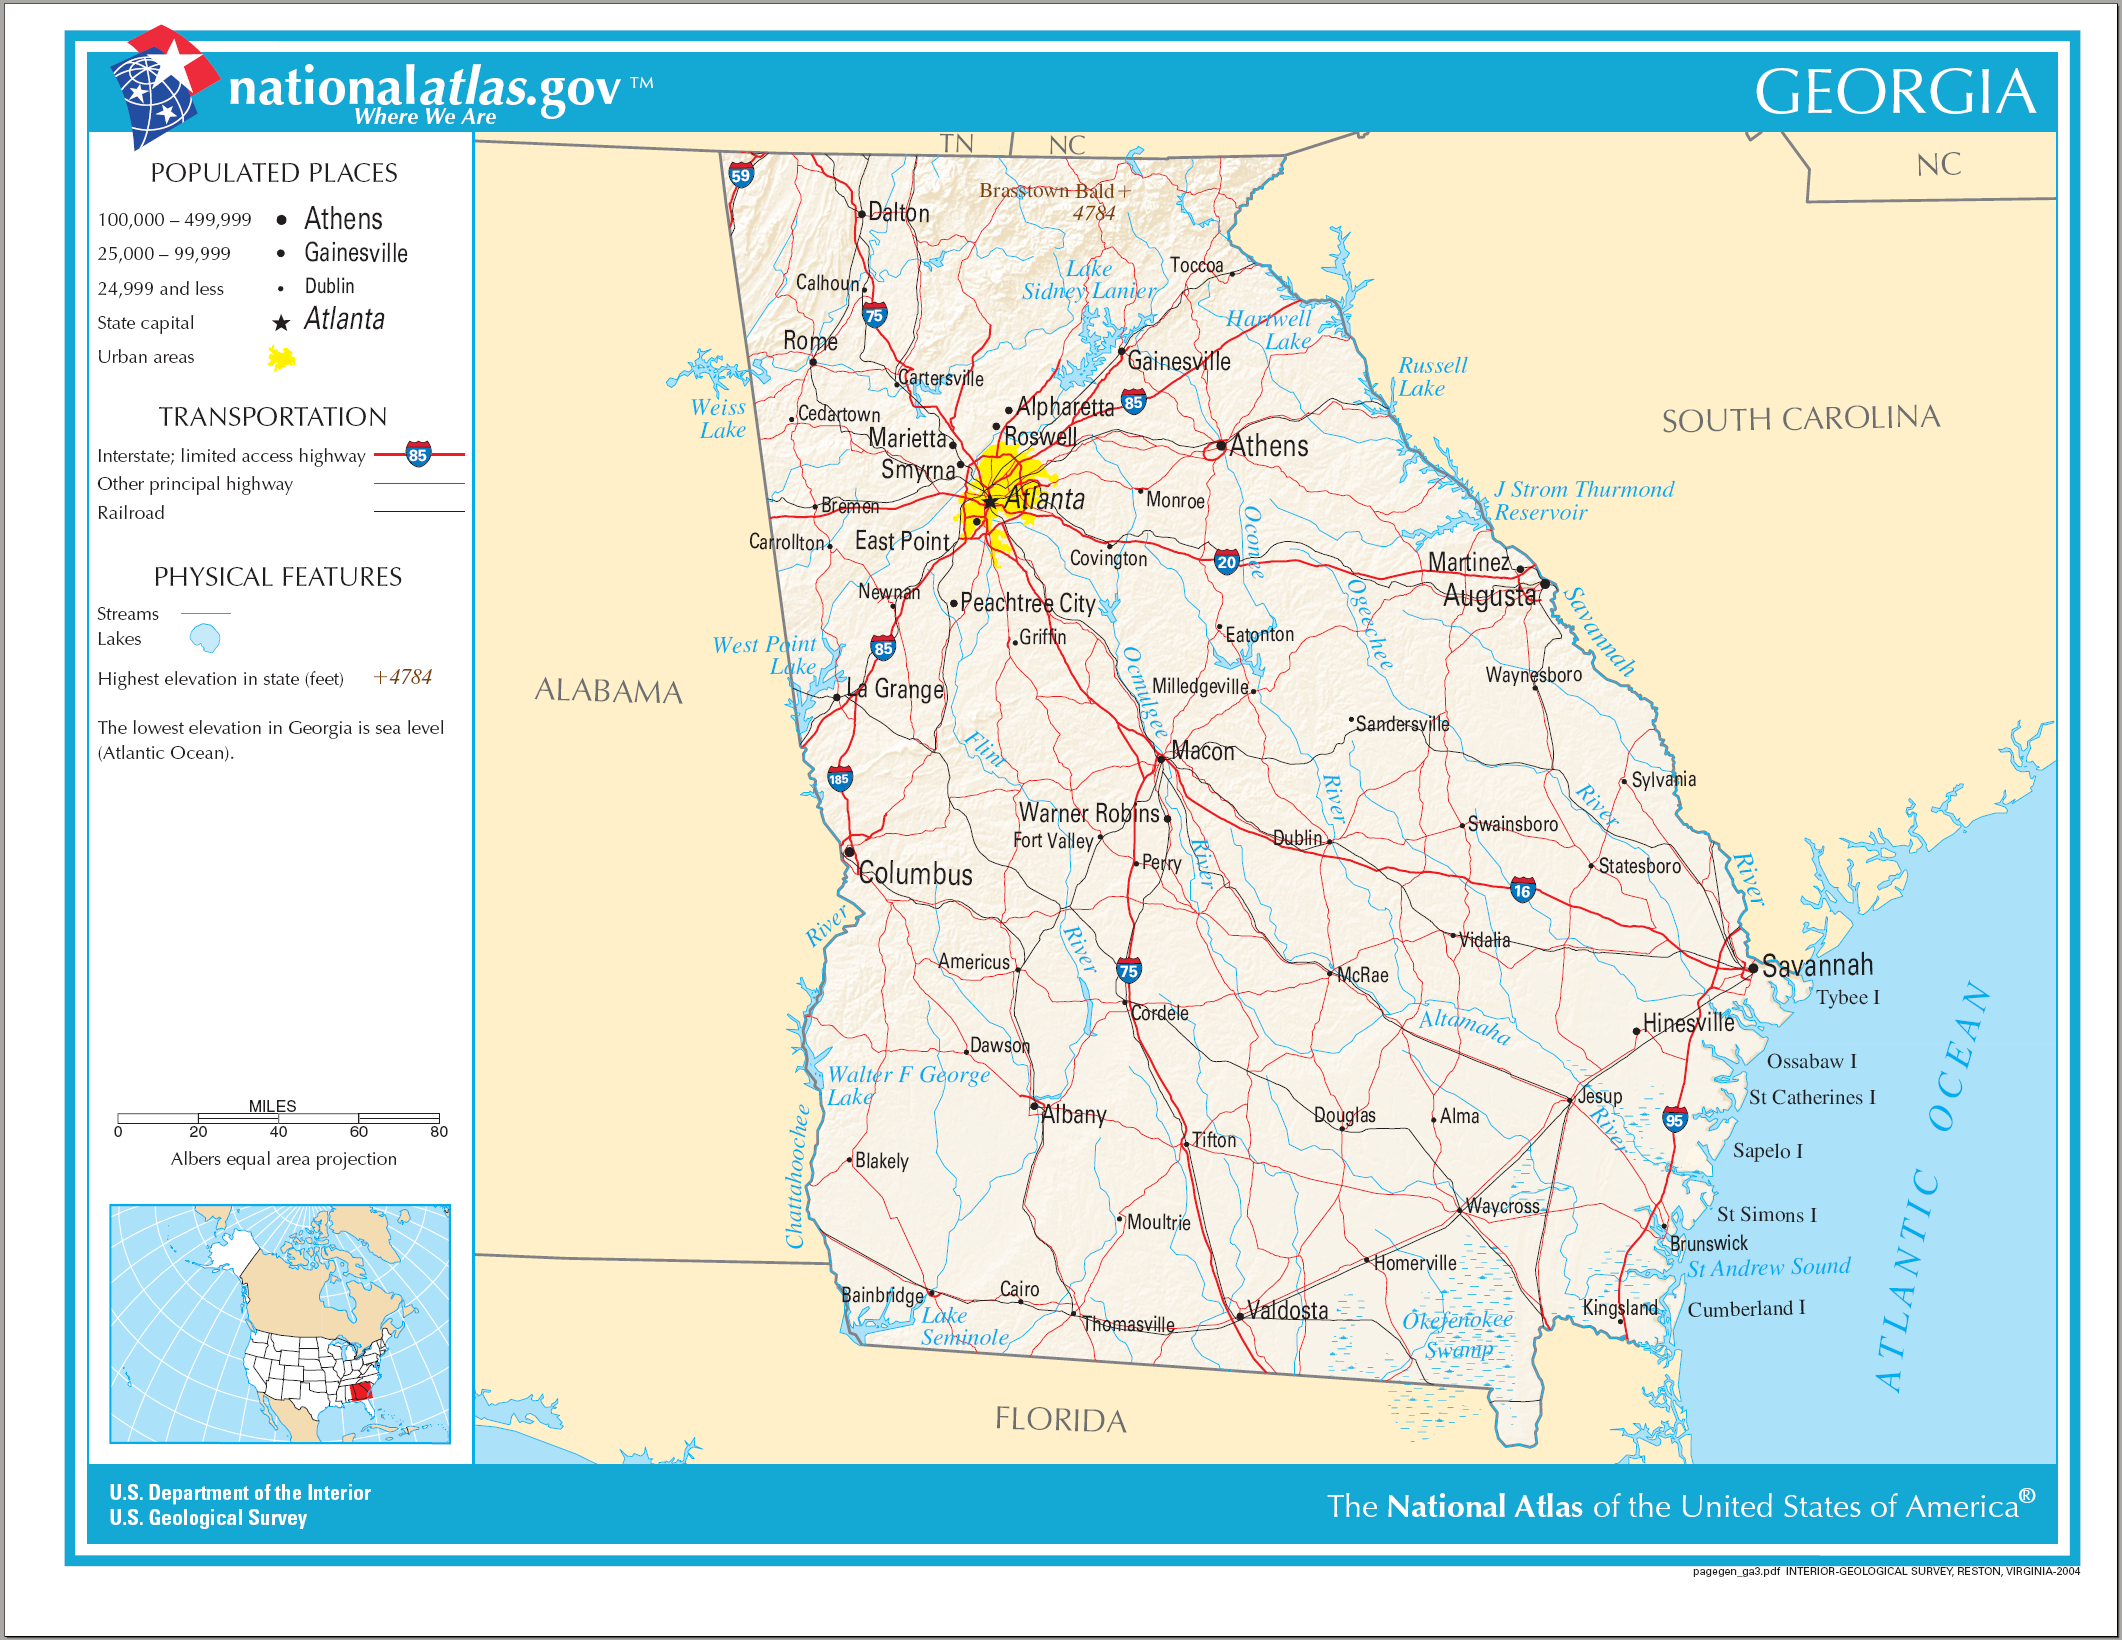 FileFlagmap Of Georgia US Statesvg Wikimedia Commons USA Map - Atlanta on the us map